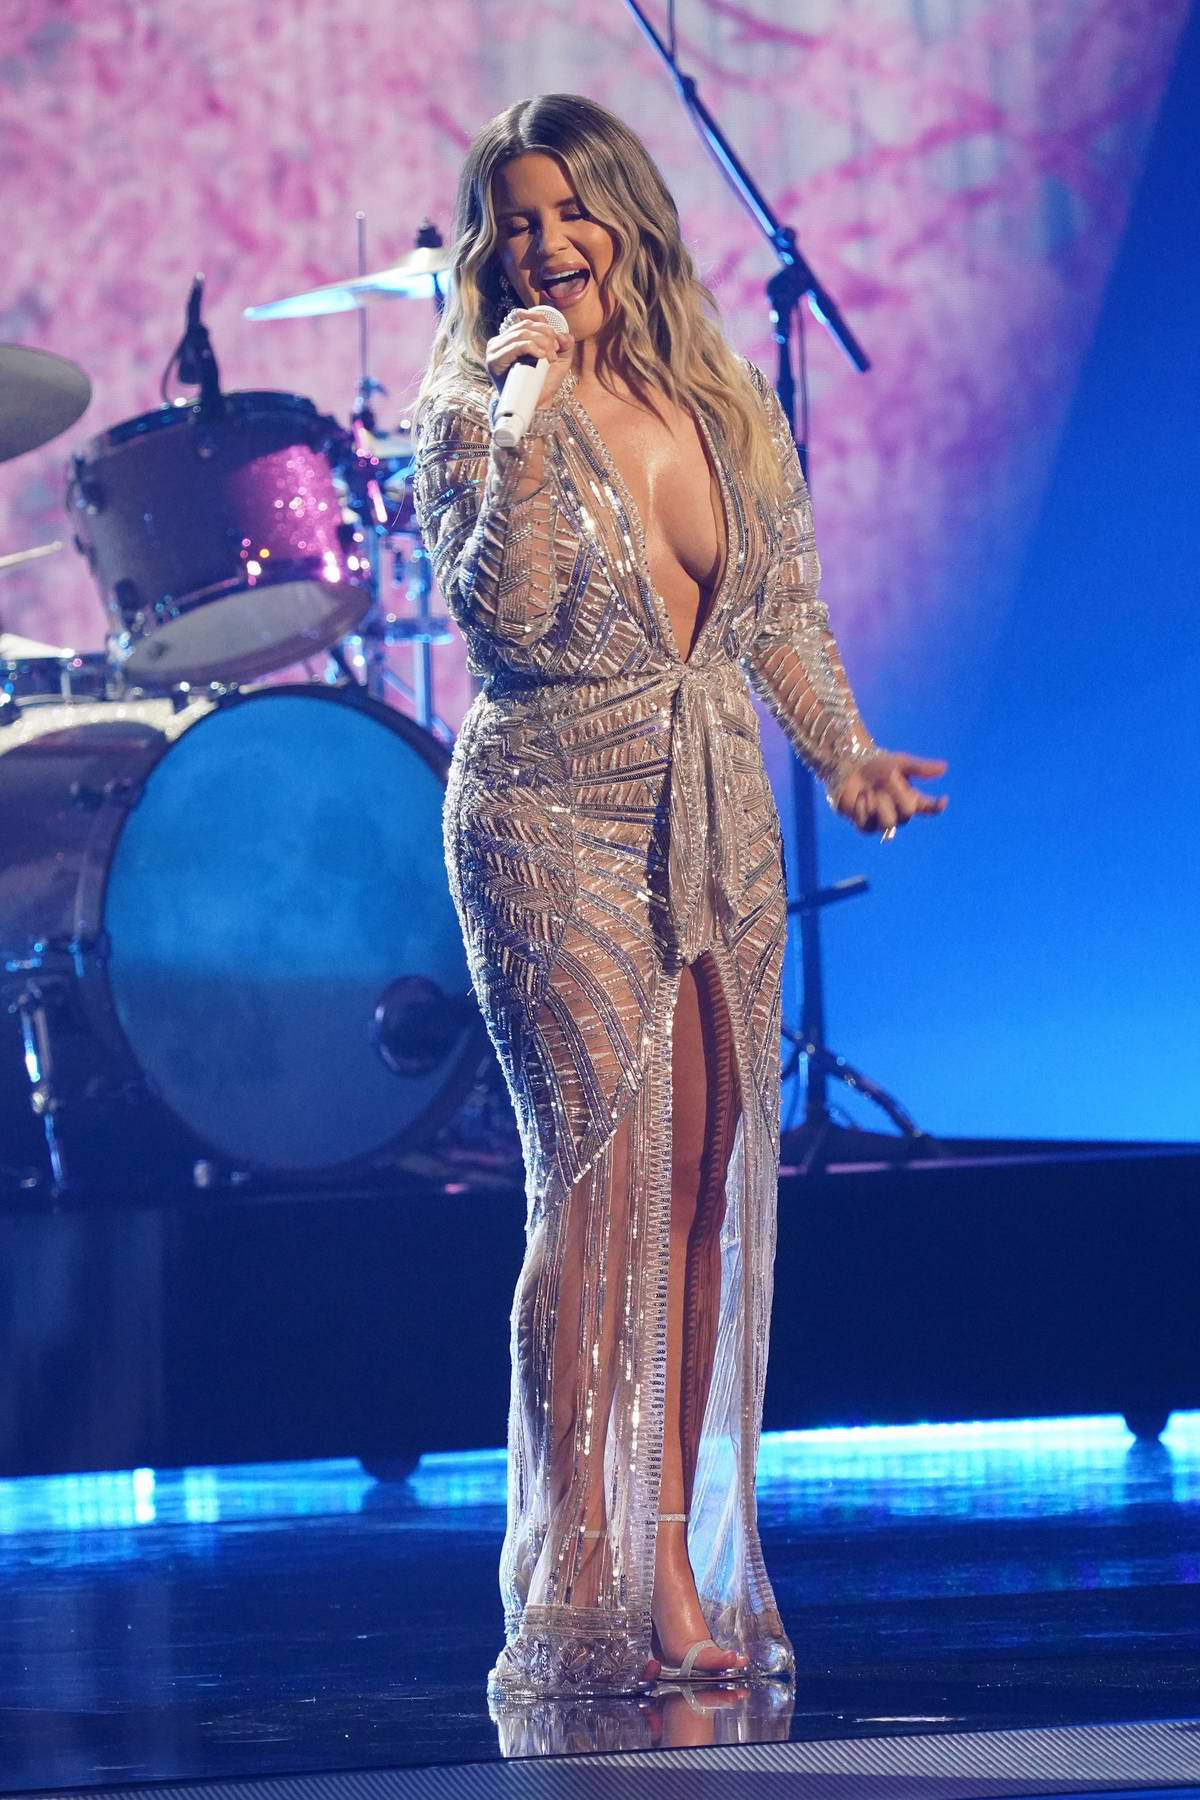 Maren Morris attends the 54th annual CMA Awards at the Music City Center in Nashville, Tennessee